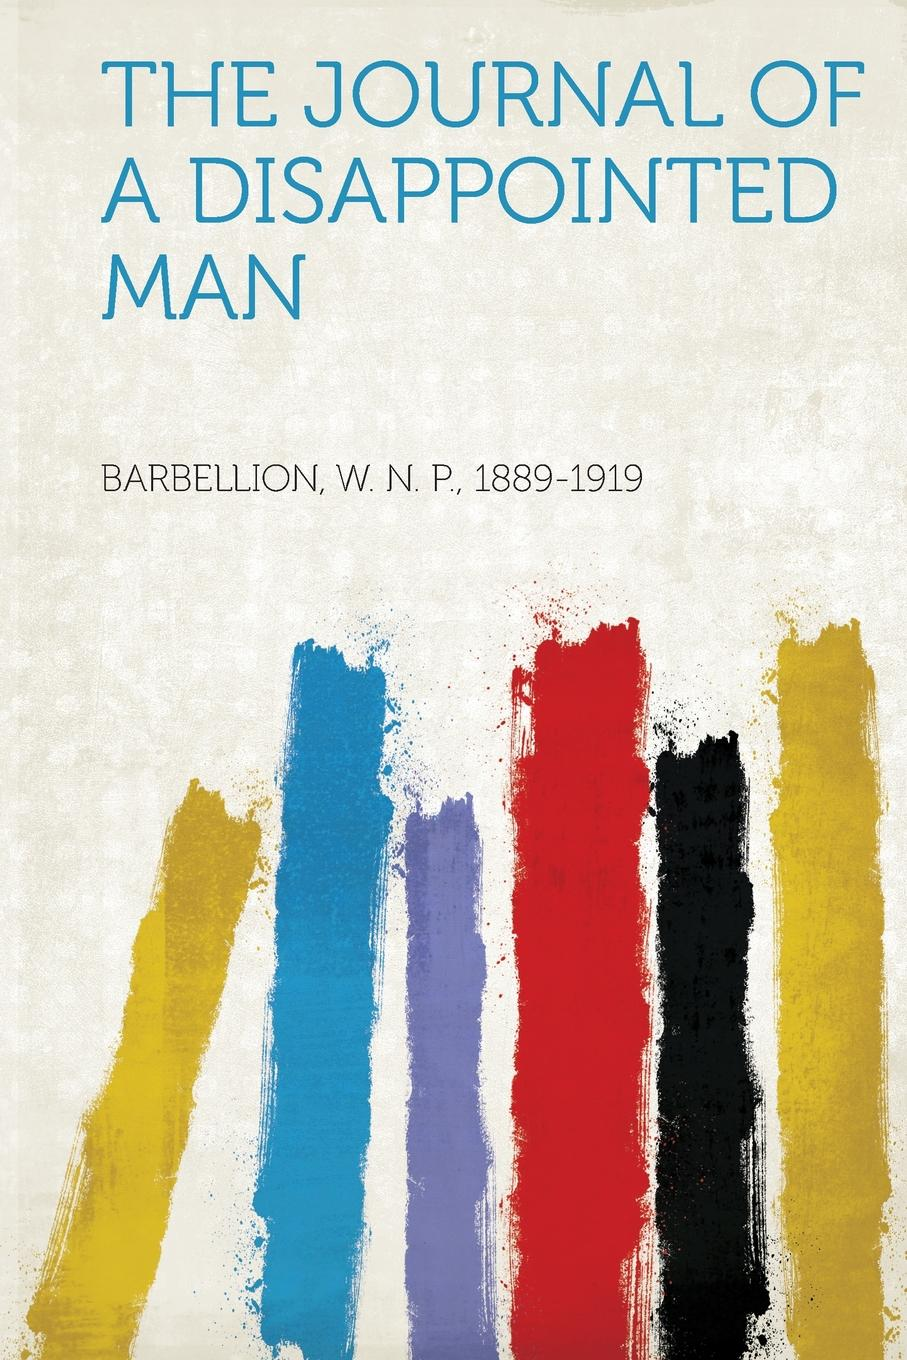 Barbellion W. N. P. 1889-1919 The Journal of a Disappointed Man w n p barbellion the journal of a disappointed man